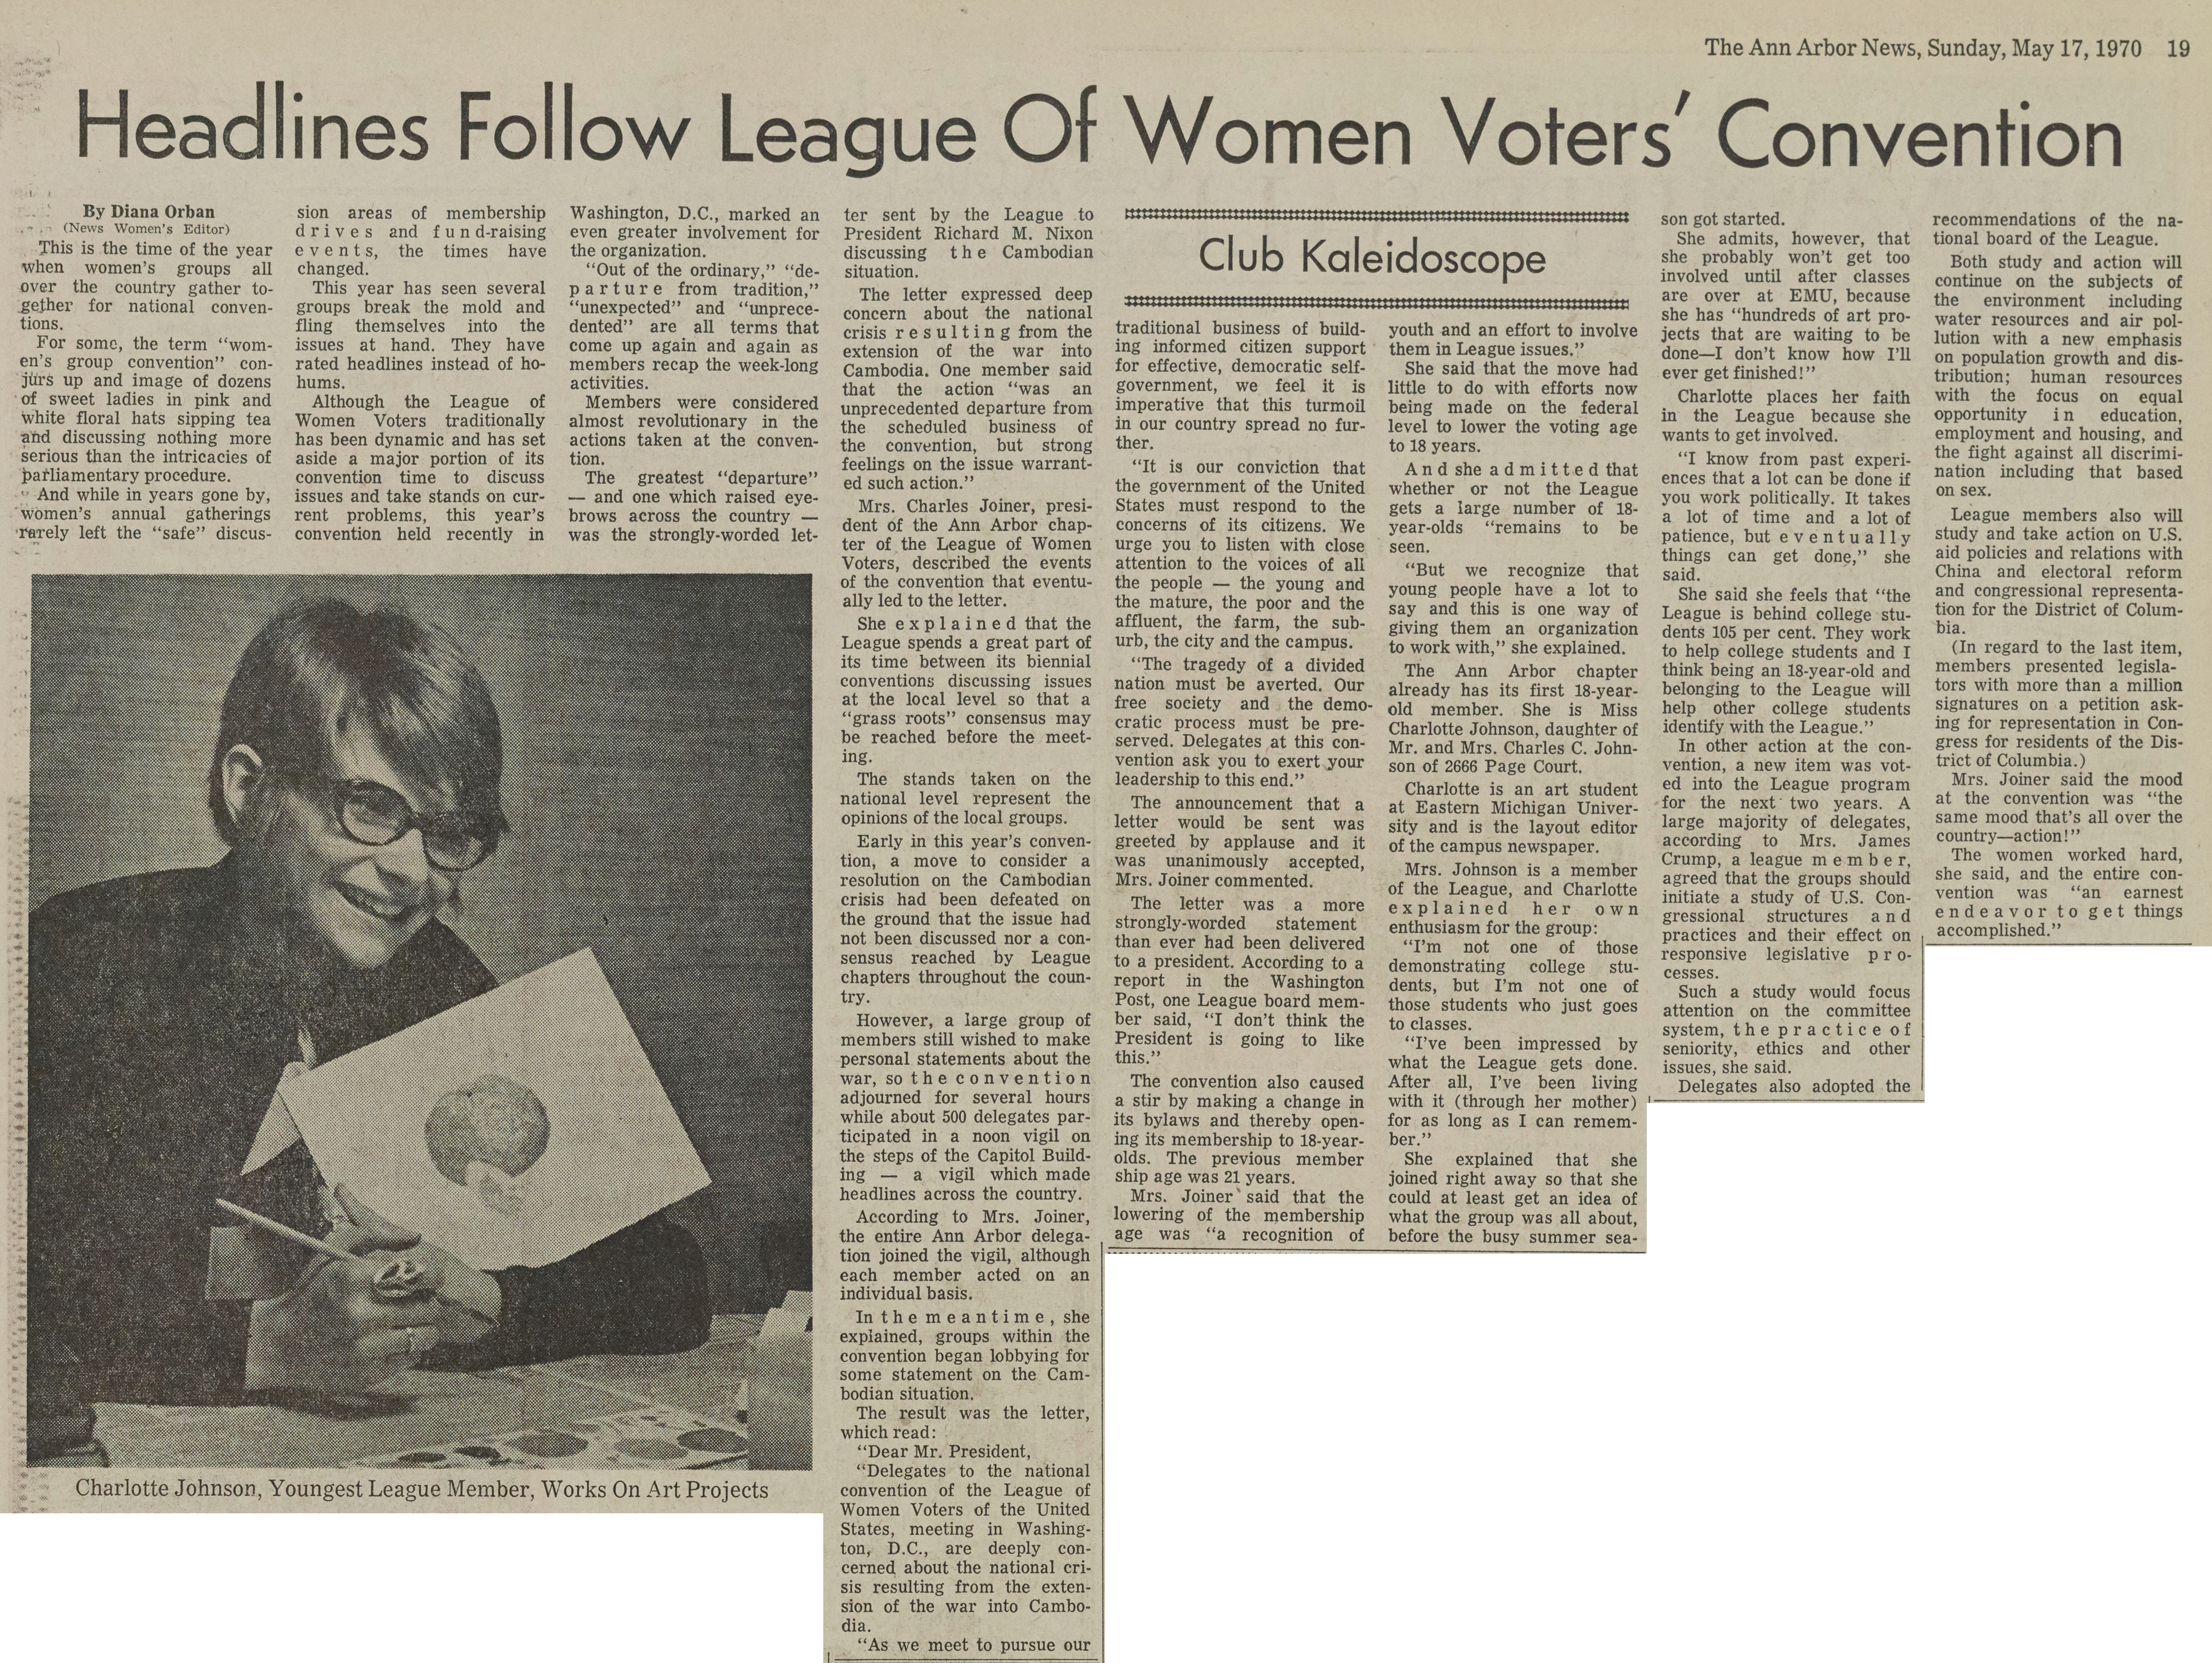 Headlines Follow League Of Women Voters' Convention image